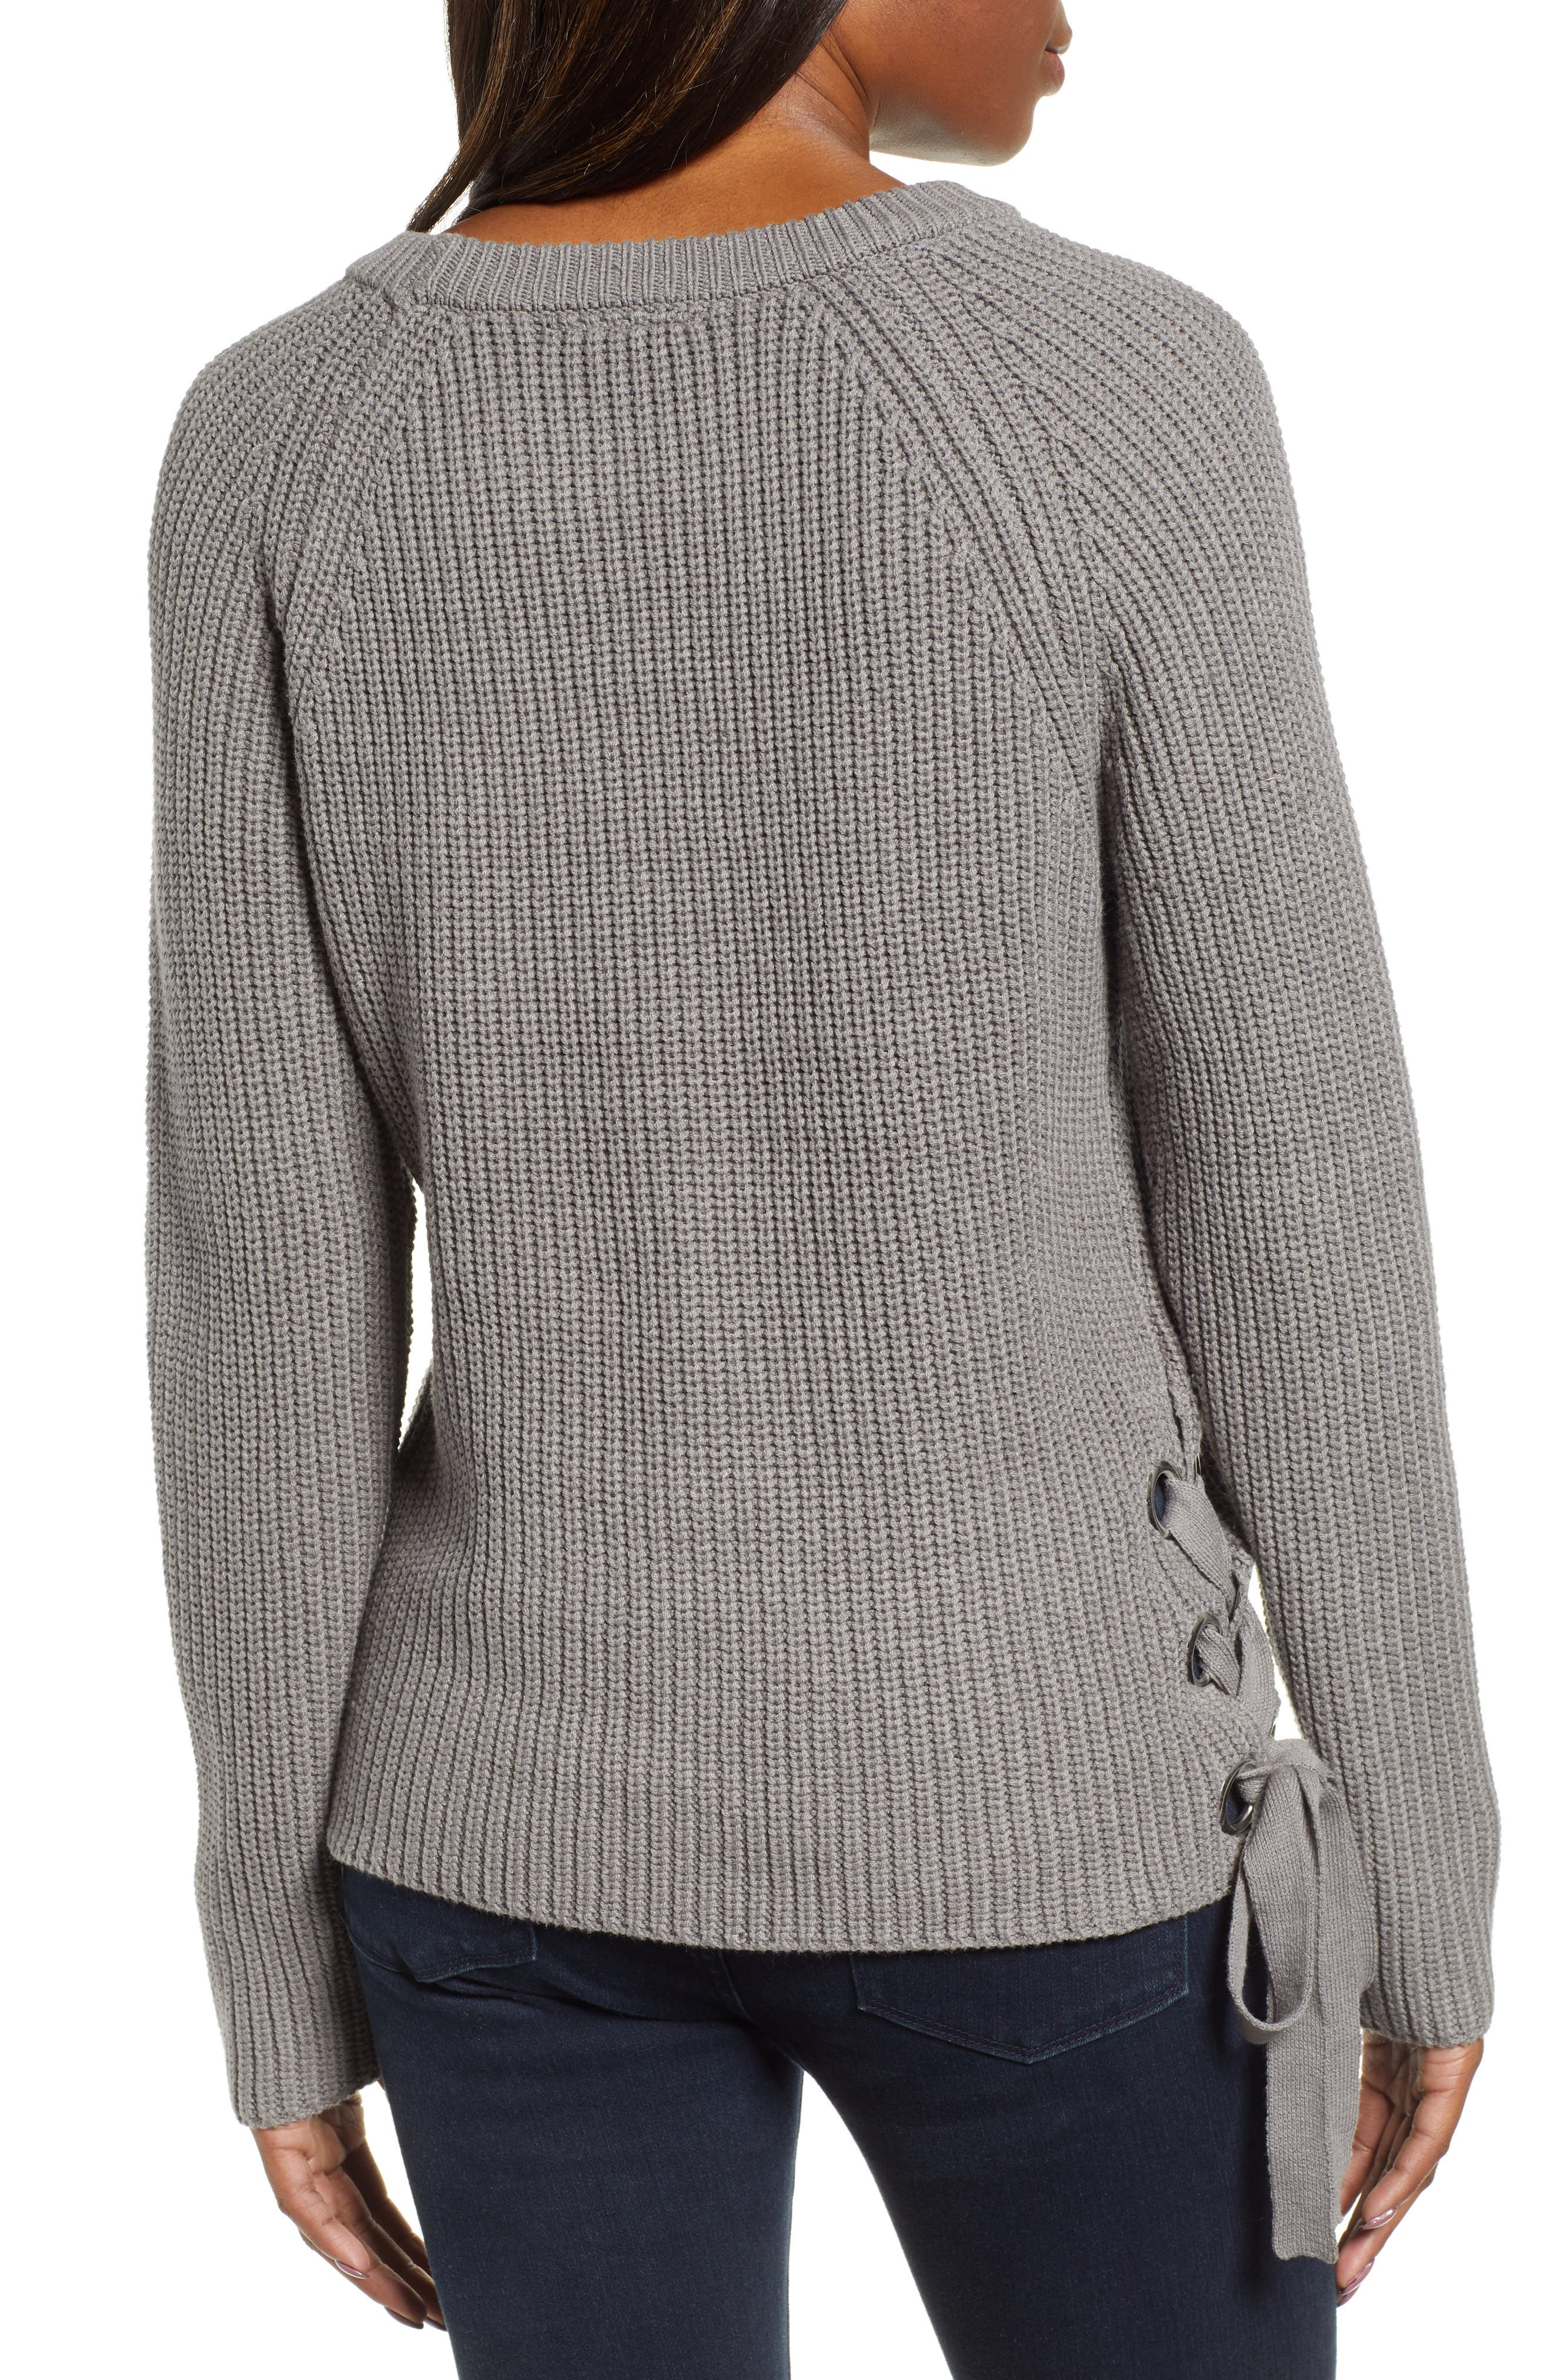 Adire Sweater,                             Alternate thumbnail 2, color,                             022